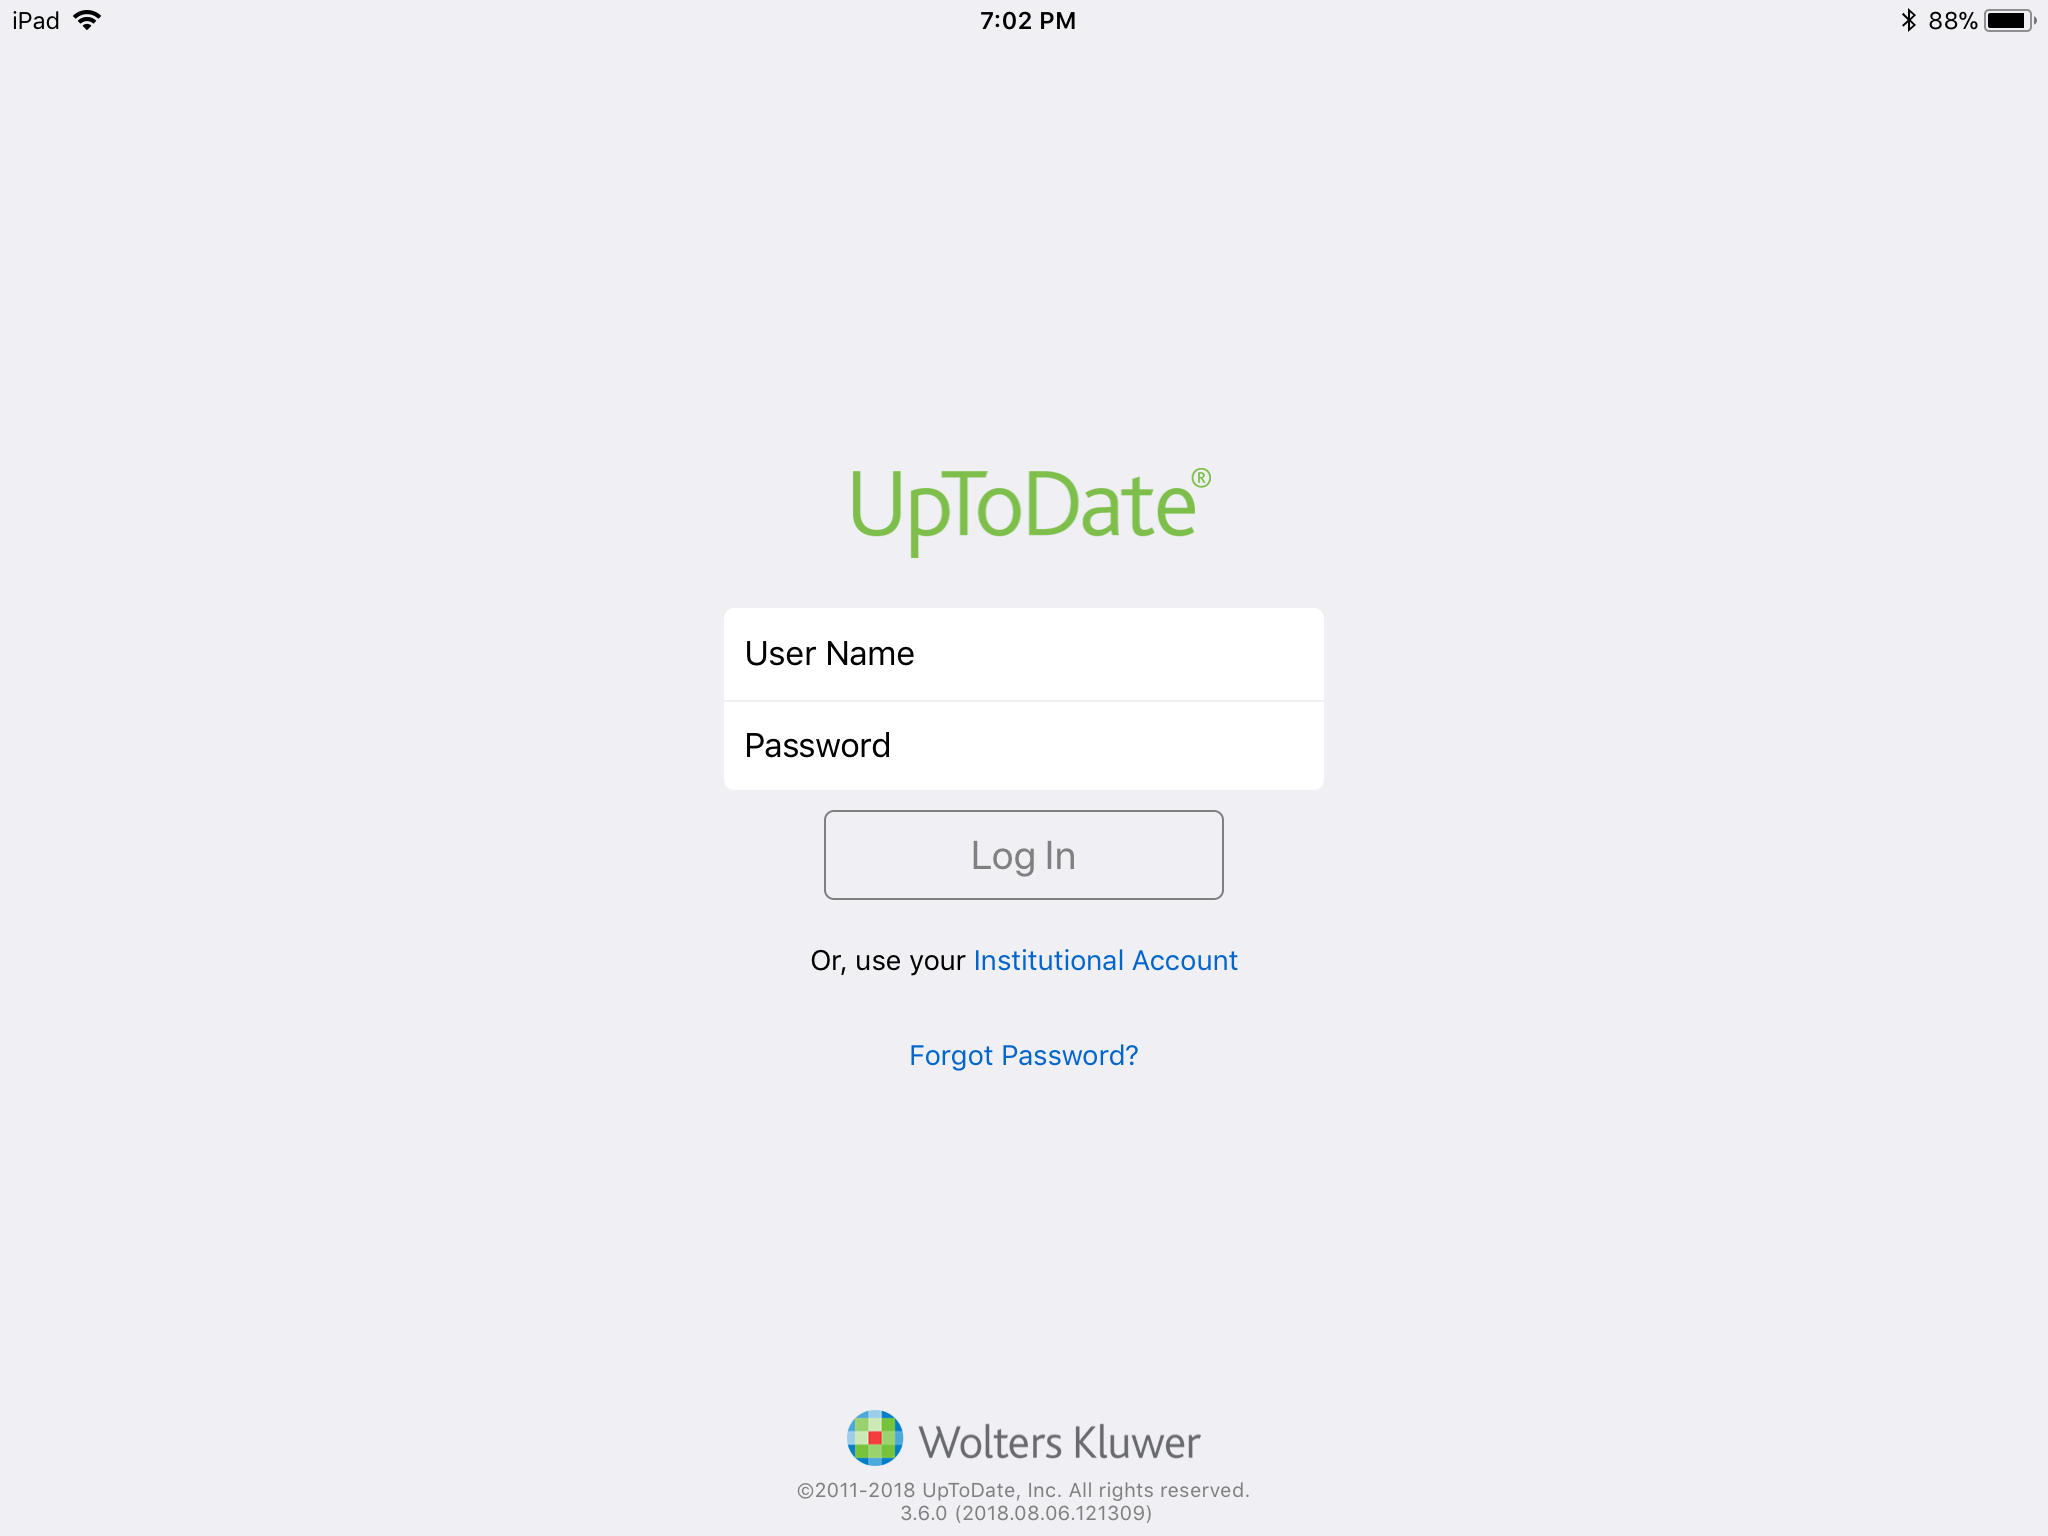 Landing page of the UpToDate app on iOS